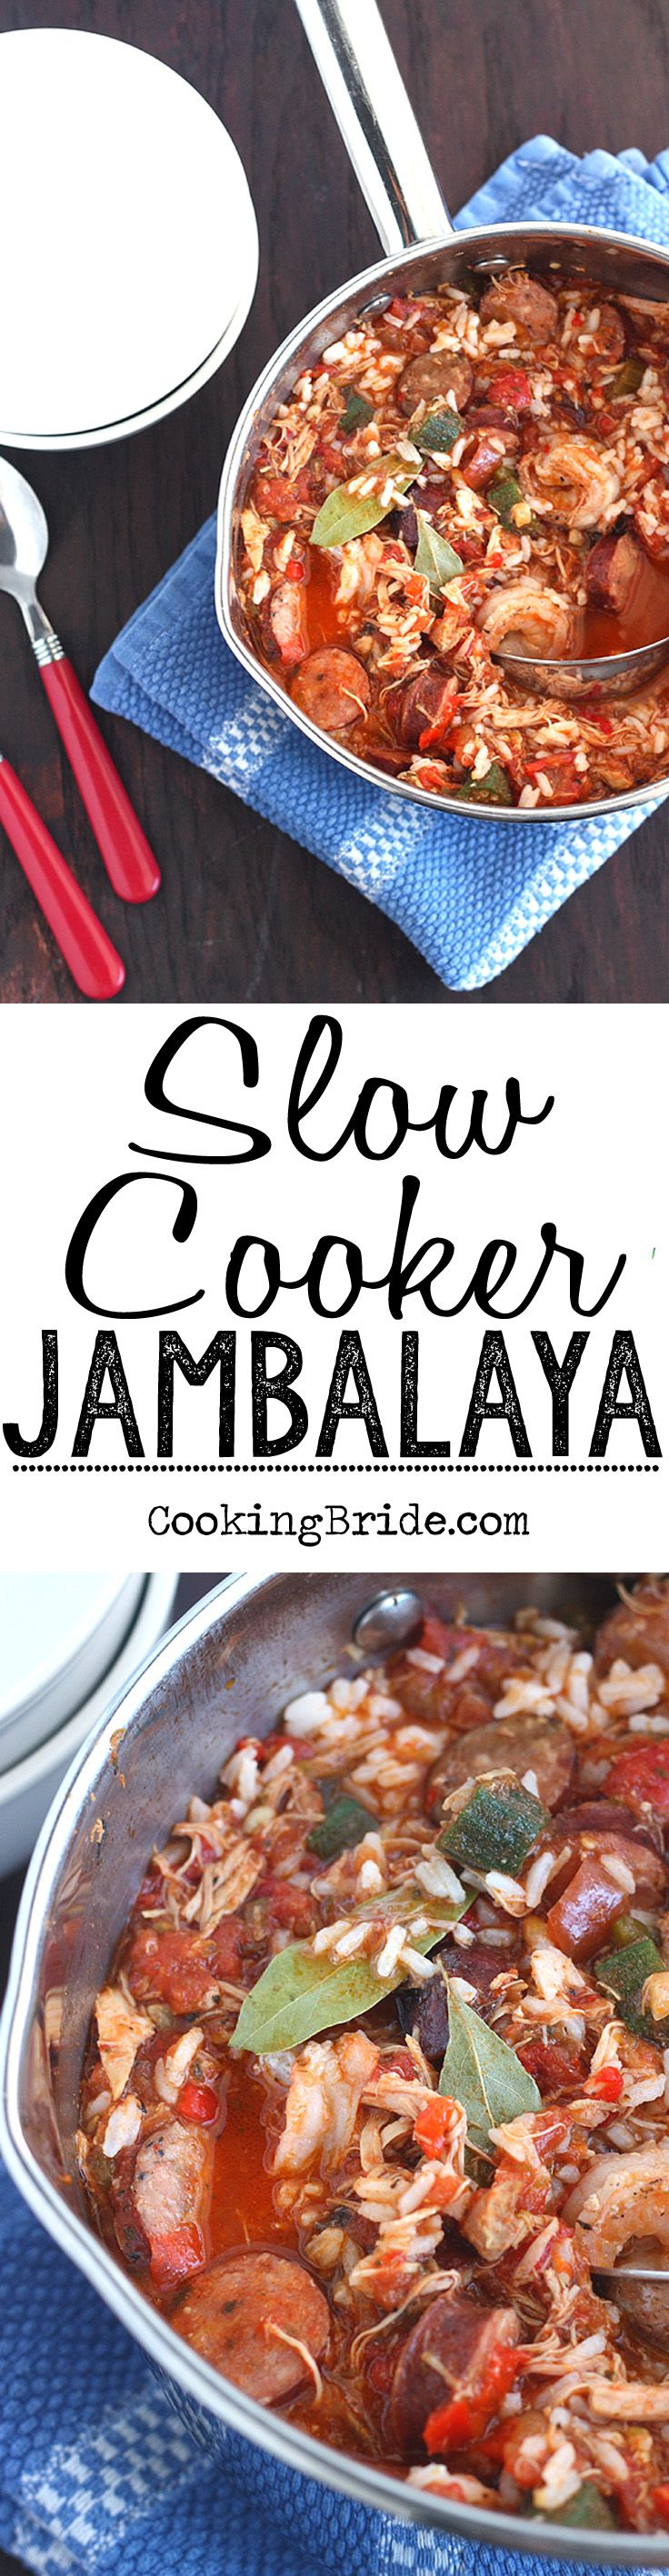 Recipe for hearty slow cooker jambalaya. Chicken, spicy andouille sausage, and shrimp simmered in a slow cooker and served over rice.